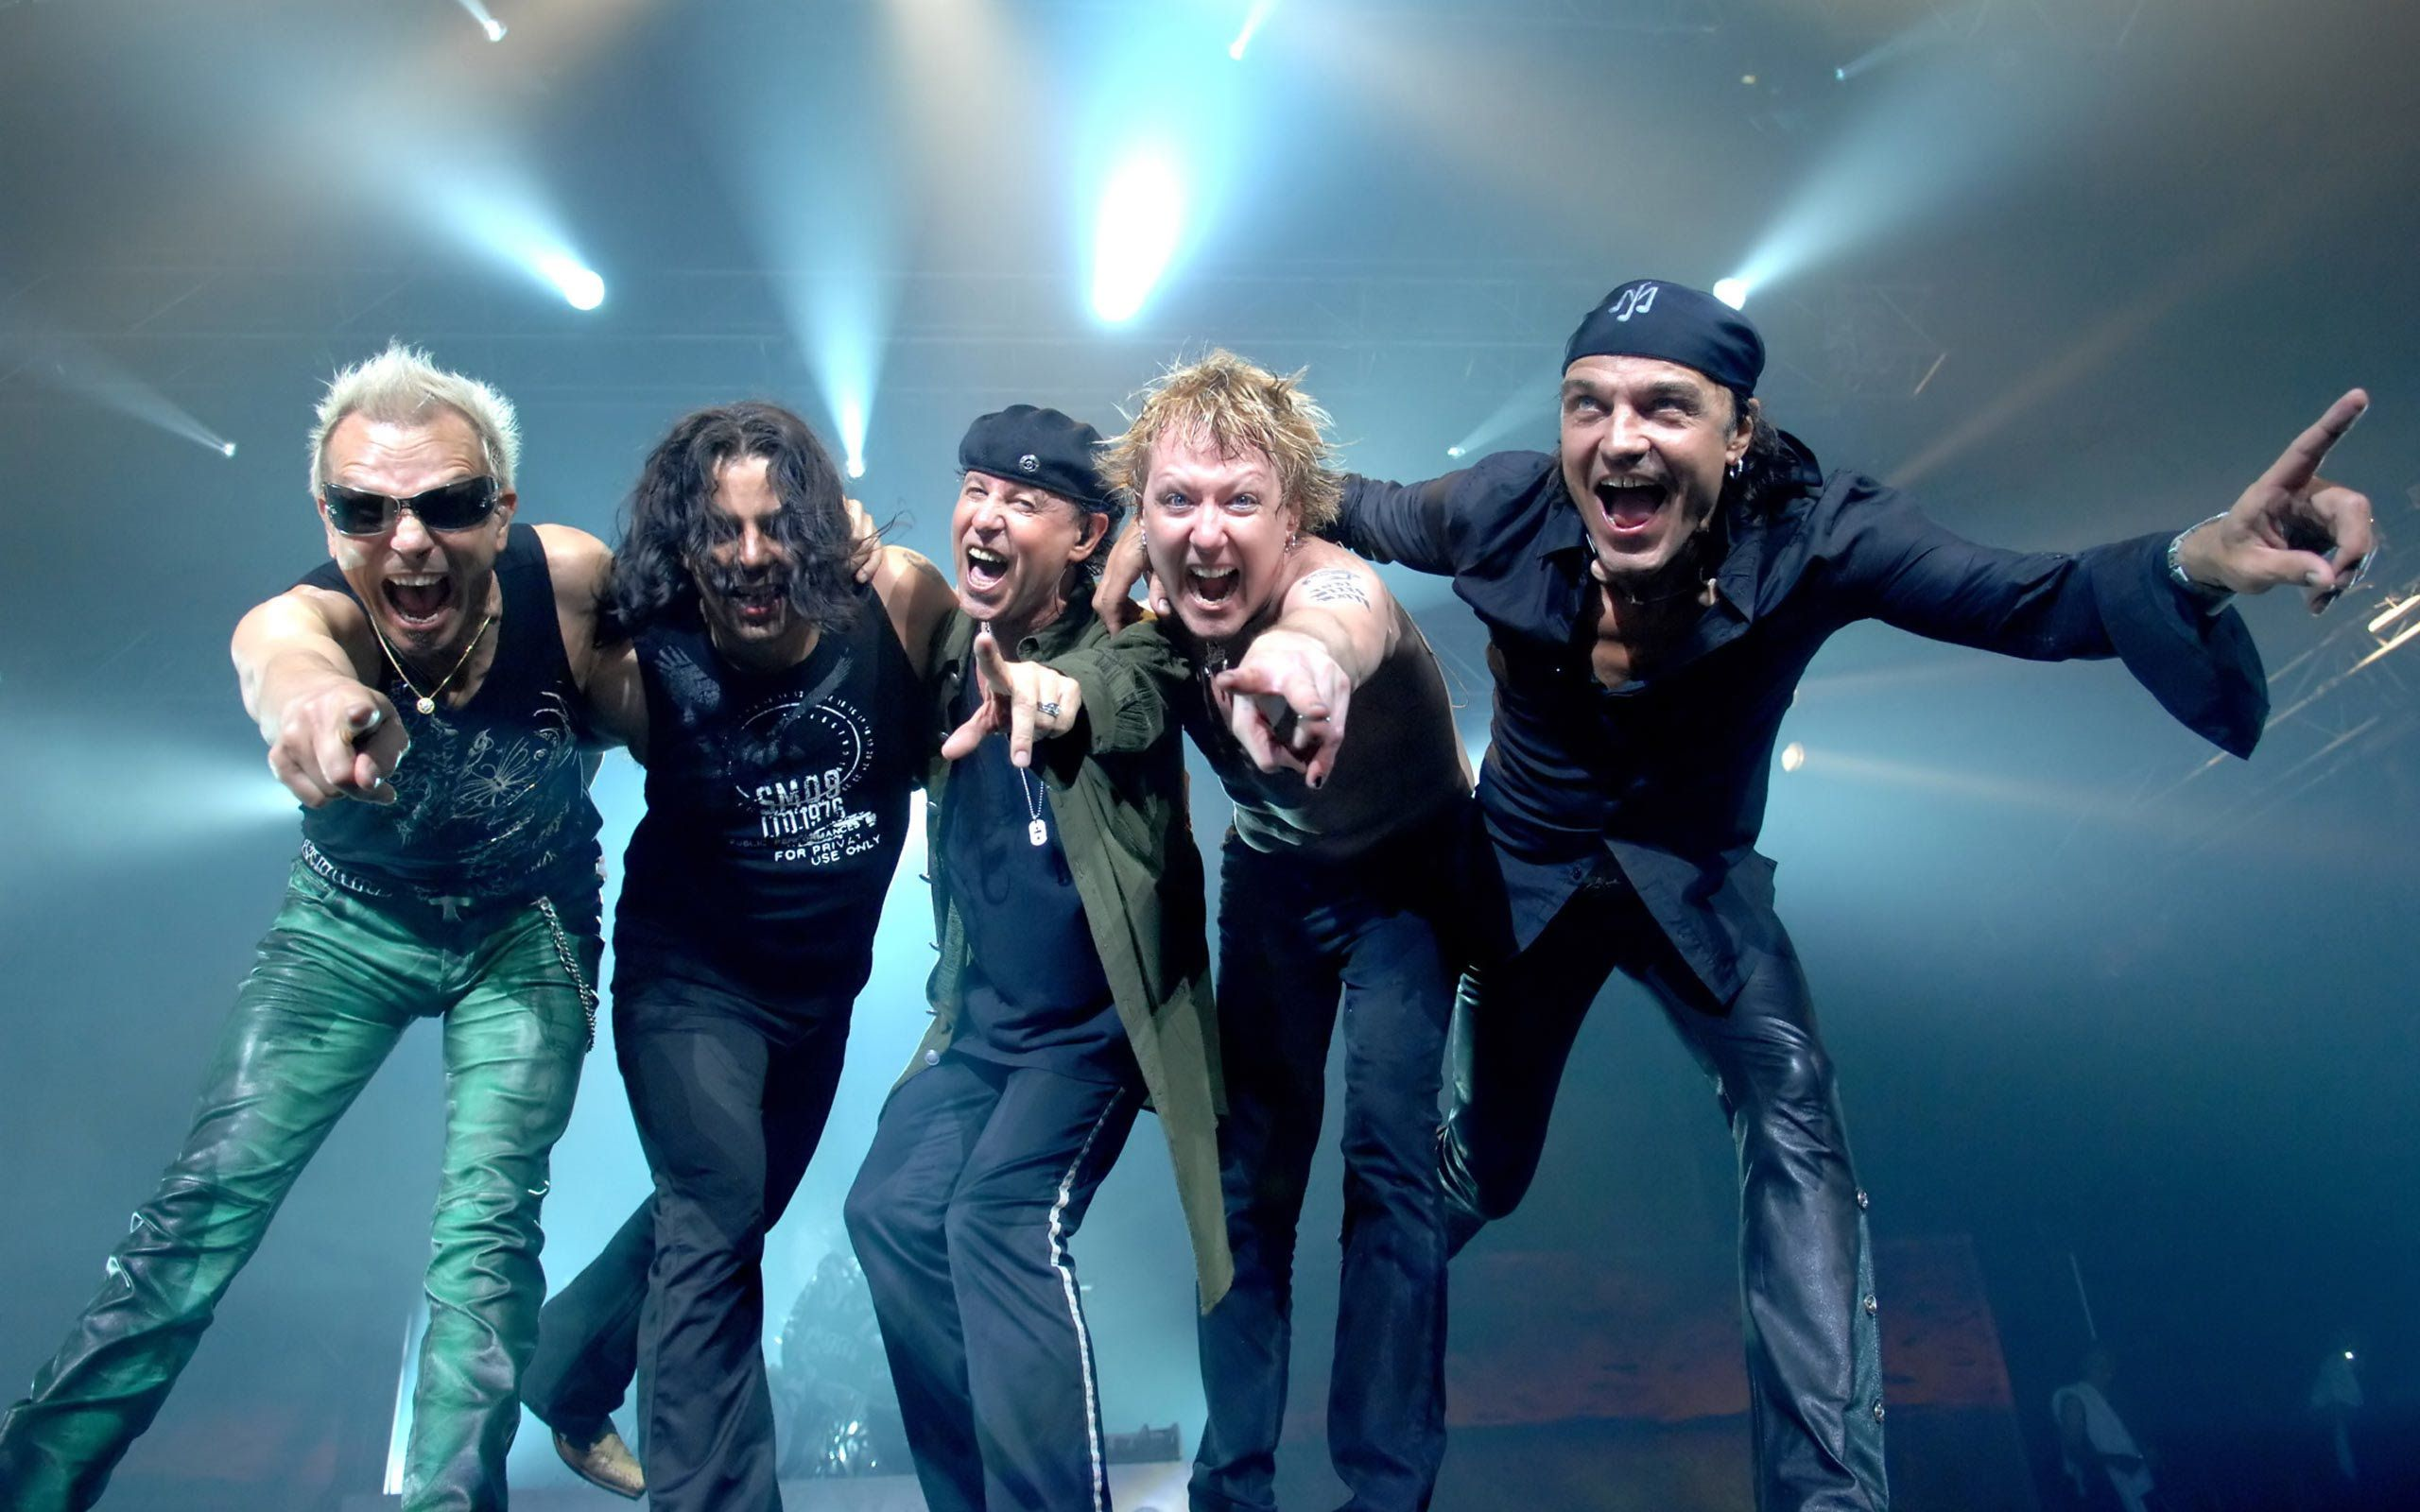 Scorpions When You Came Into My Life Traduction Paroles Francaise Youtube Scorpions Band Scorpions Wind Of Change Hard Rock